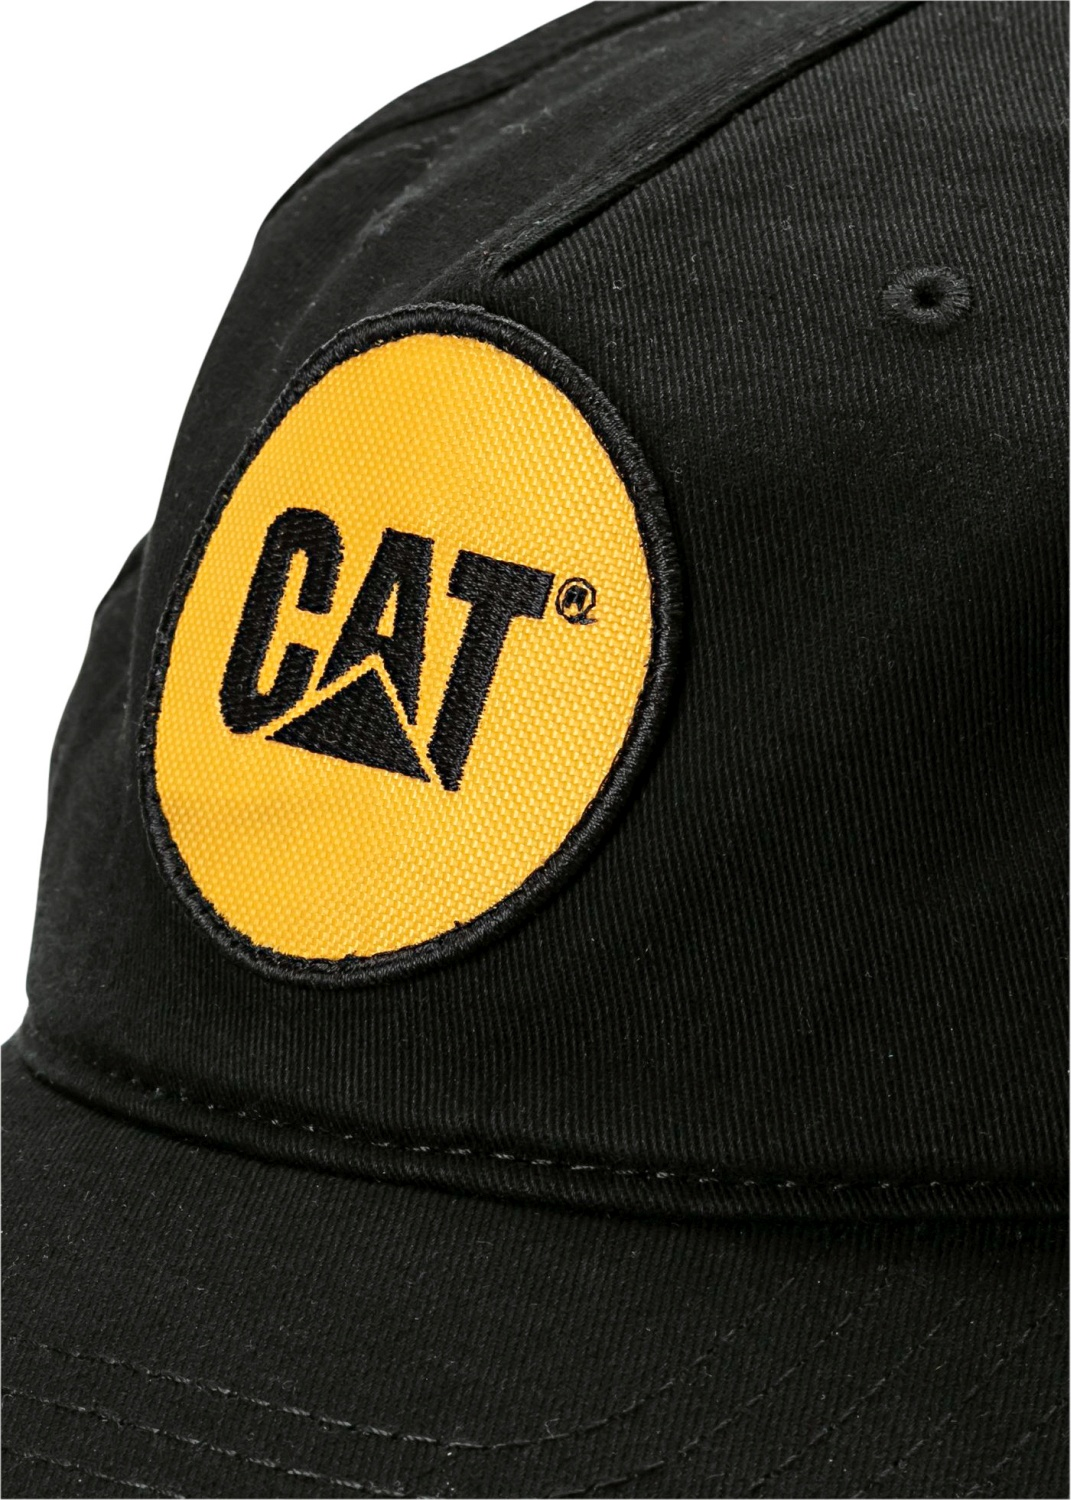 HP-CAT PATCH HAT image number 1